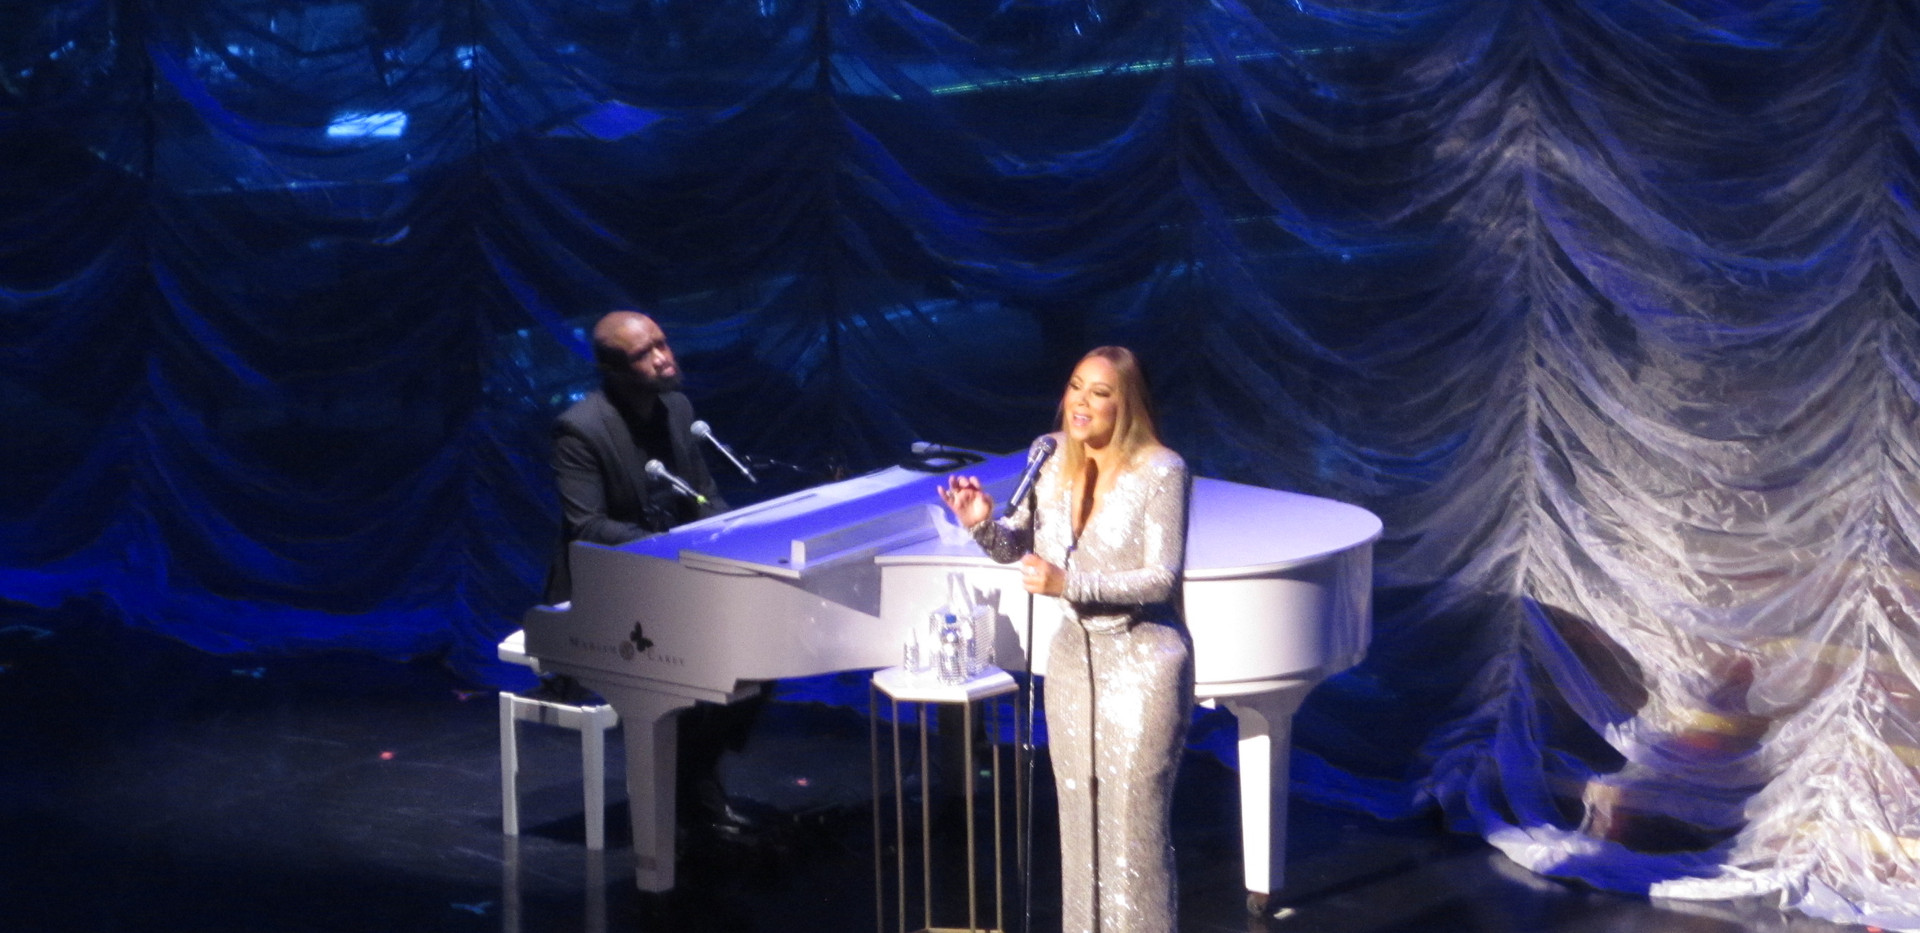 Mariah Carey at Caesars Palace Las Vegas